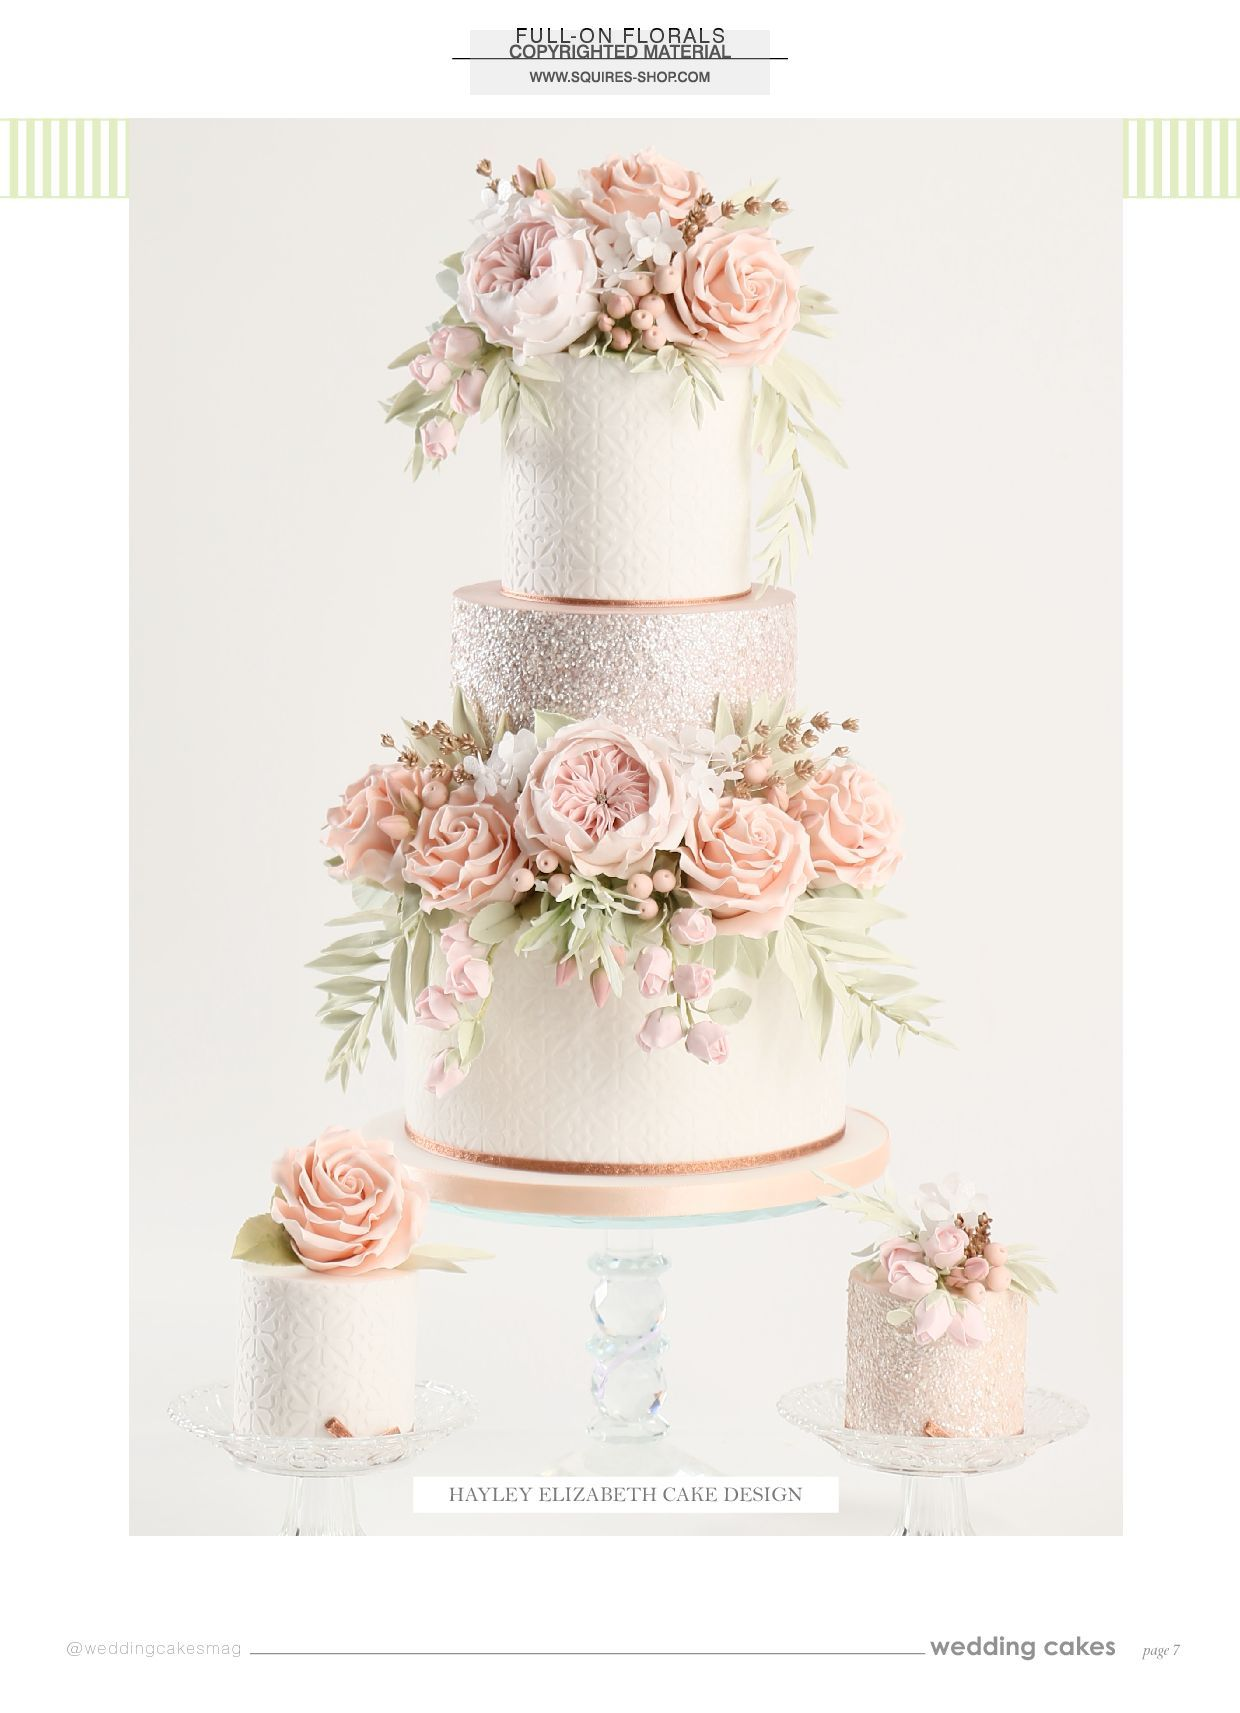 Wedding Cakes Magazine Summer 2018 | Squires Kitchen Shop